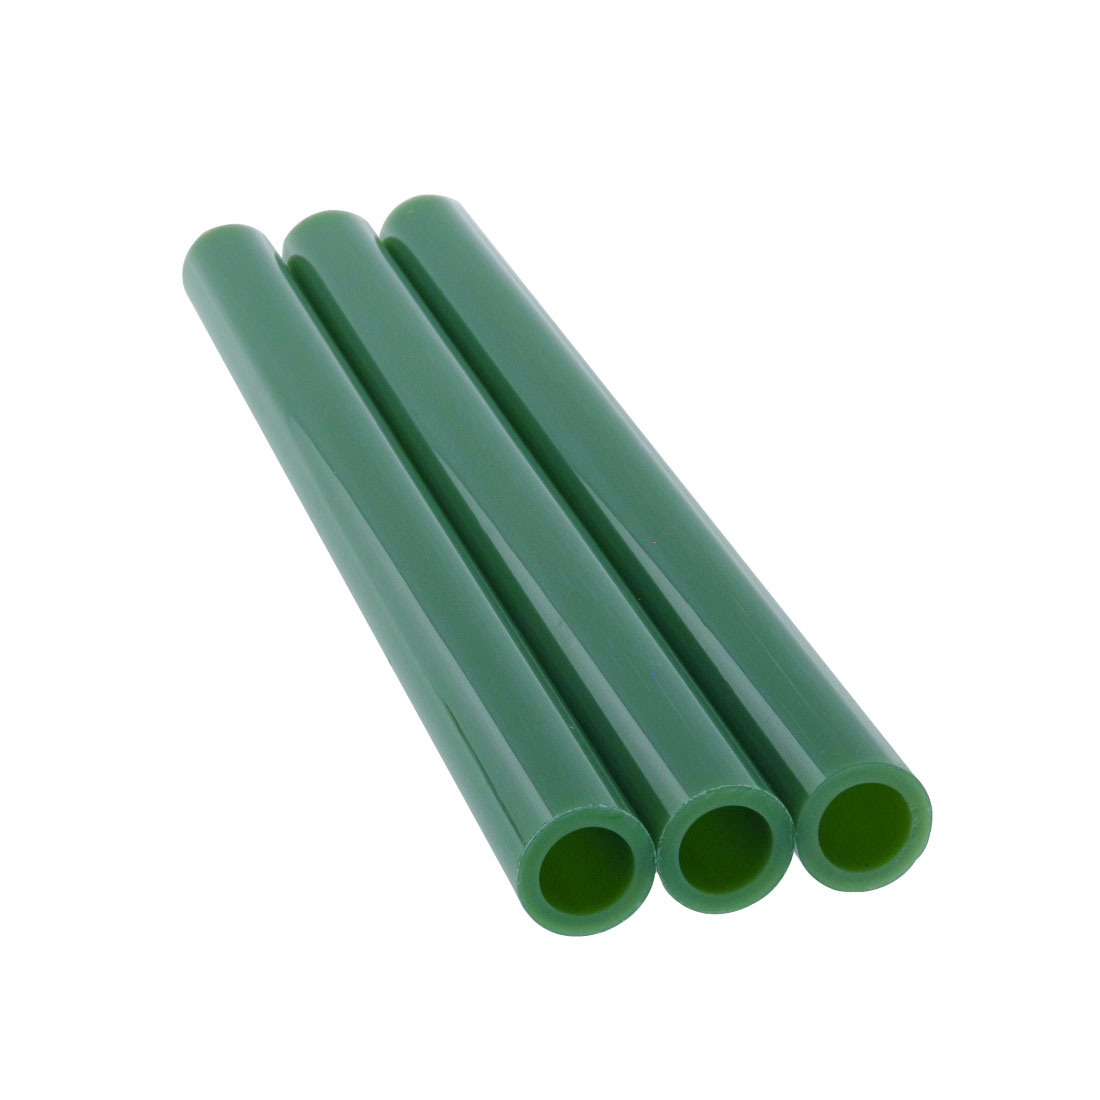 Asian 25mm Jade Green Tubing